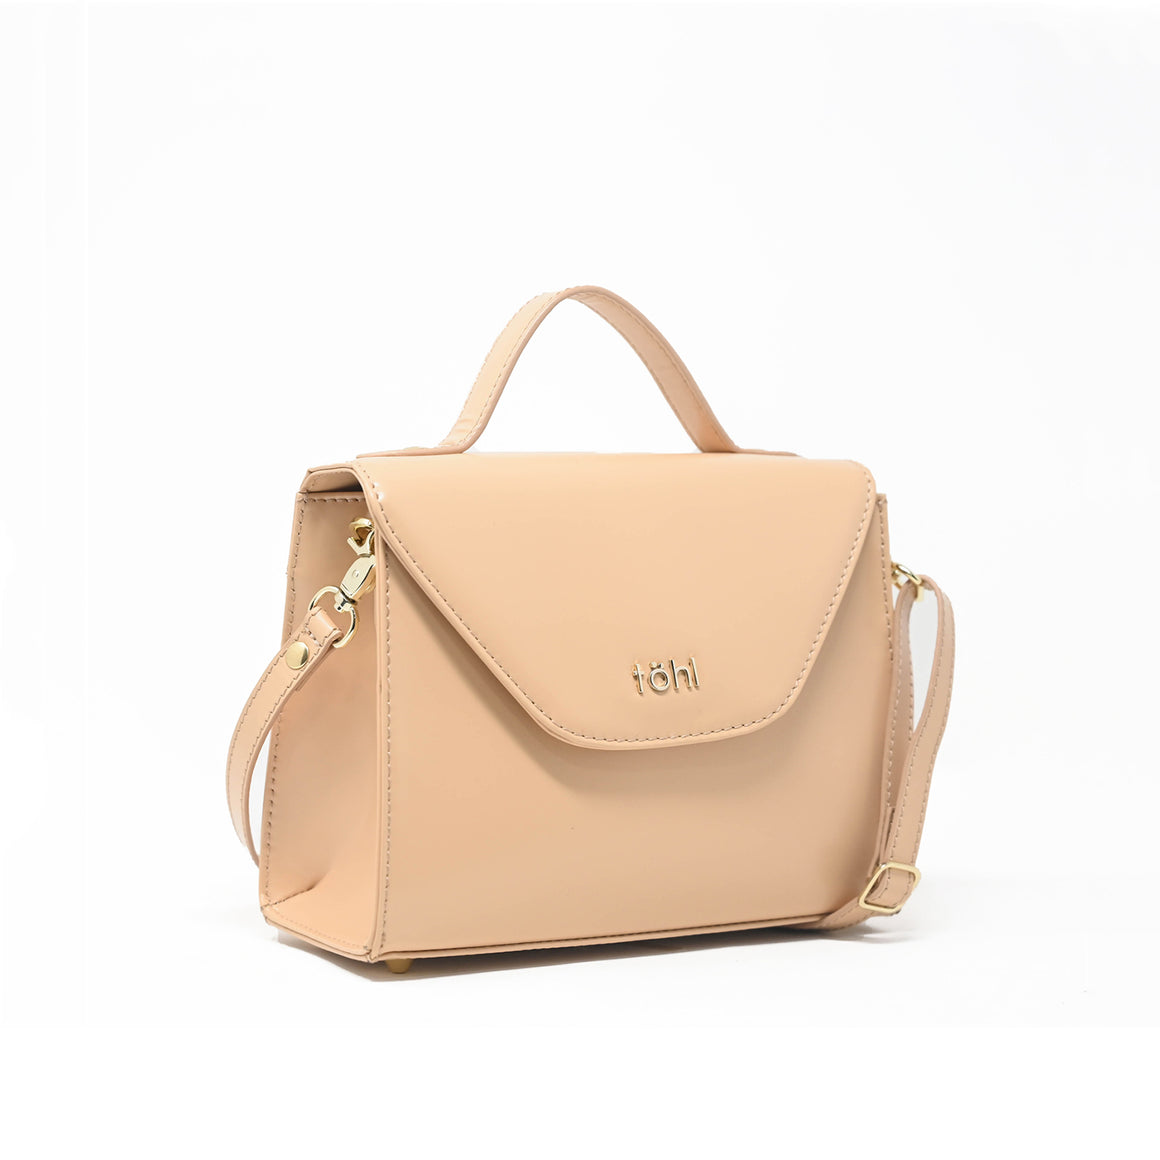 SG0032 - TOHL ABBEY WOMEN'S CROSS-BODY BAG - NUDE